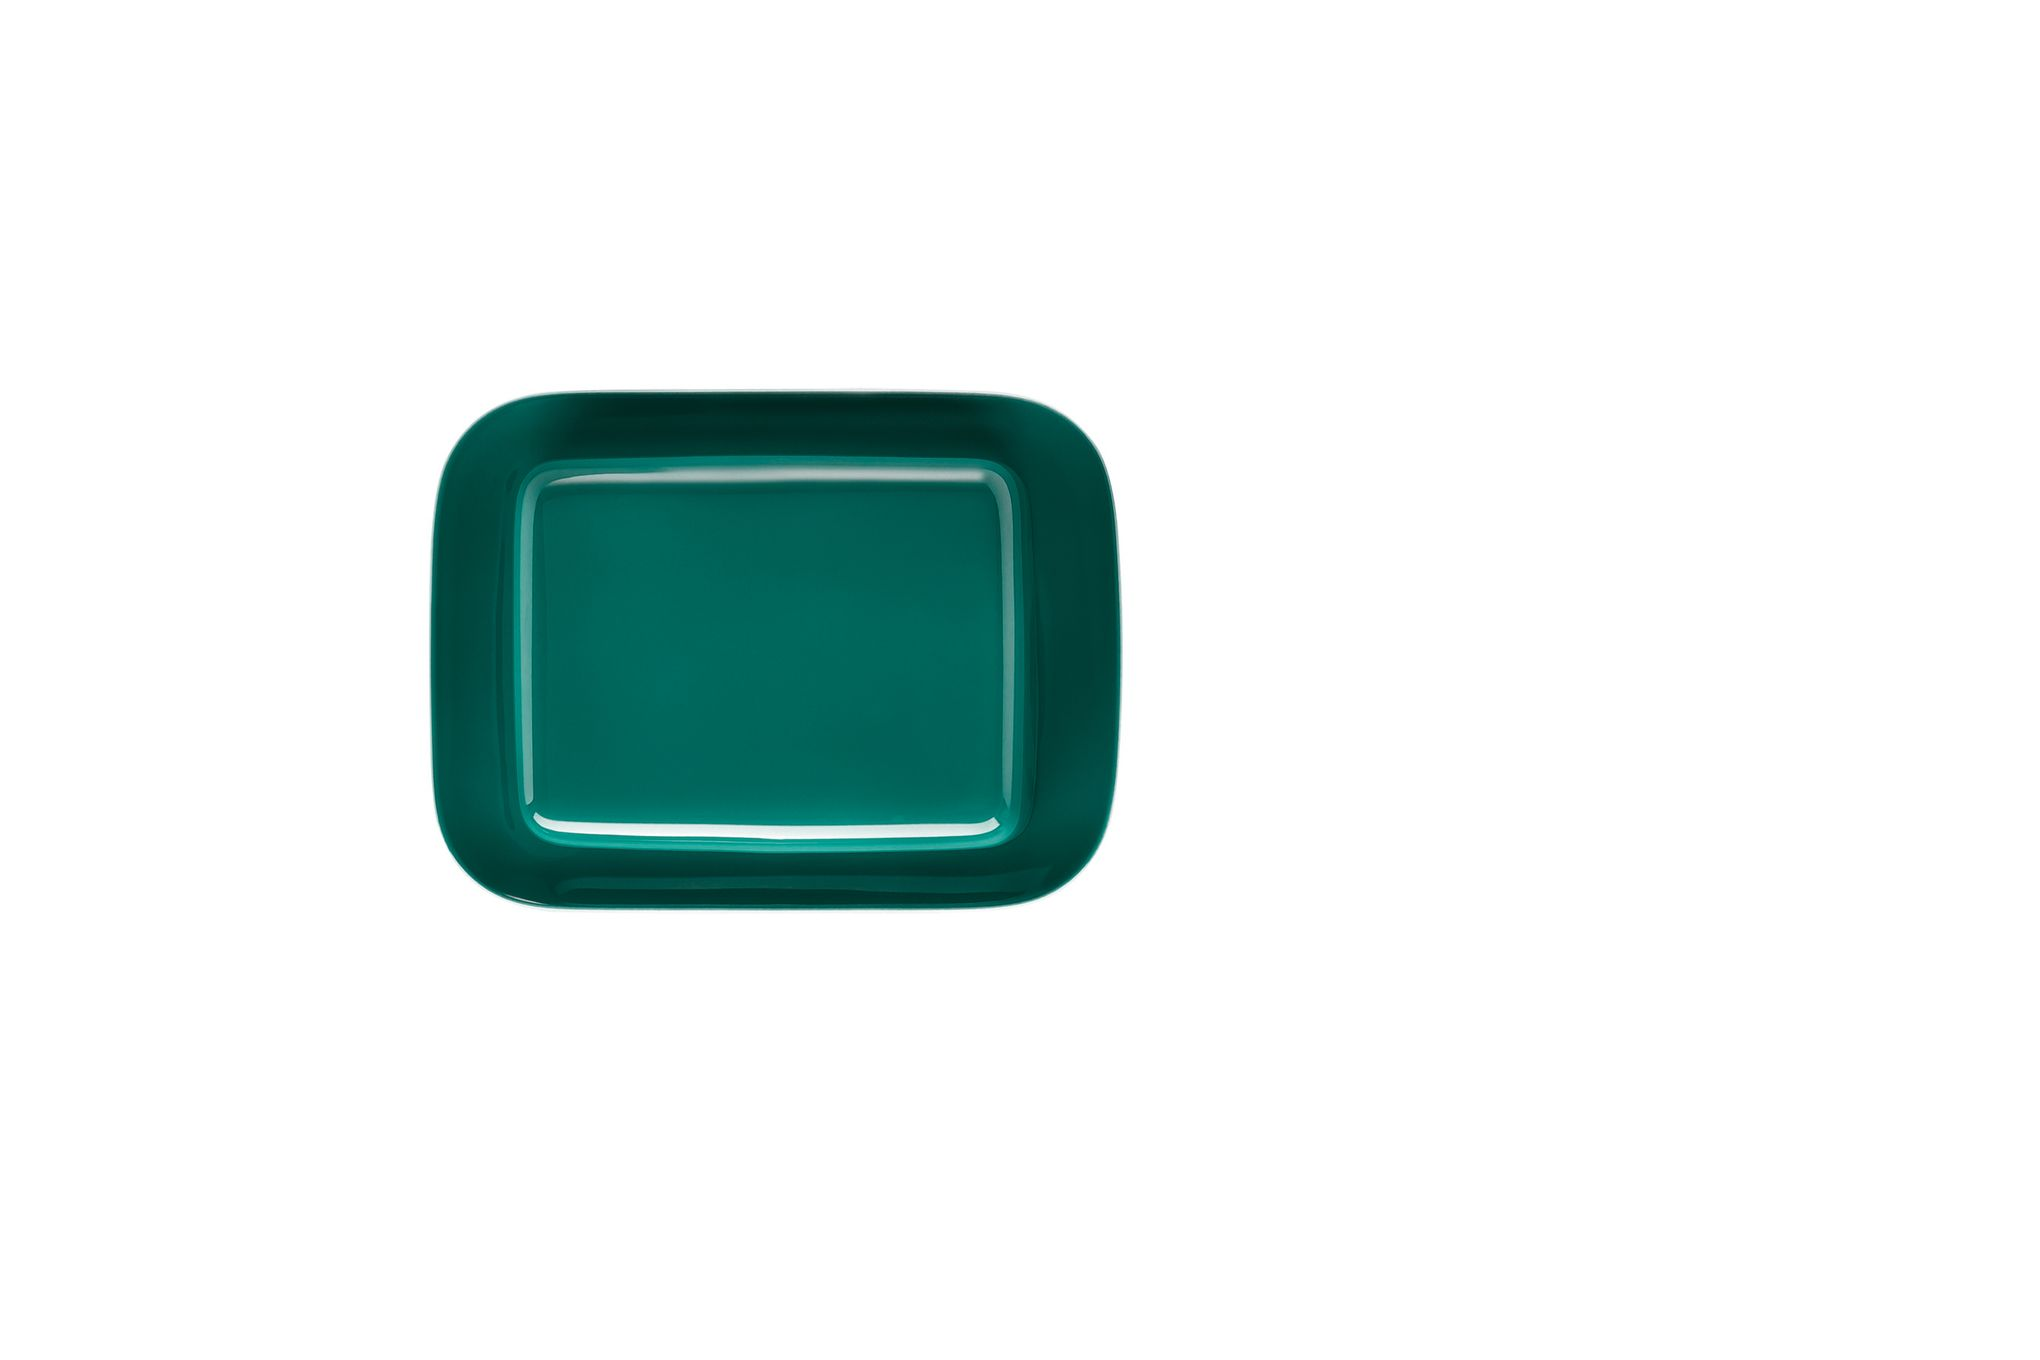 Thomas Sunny Day - Seaside Green Butter Dish + Lid thumb 2